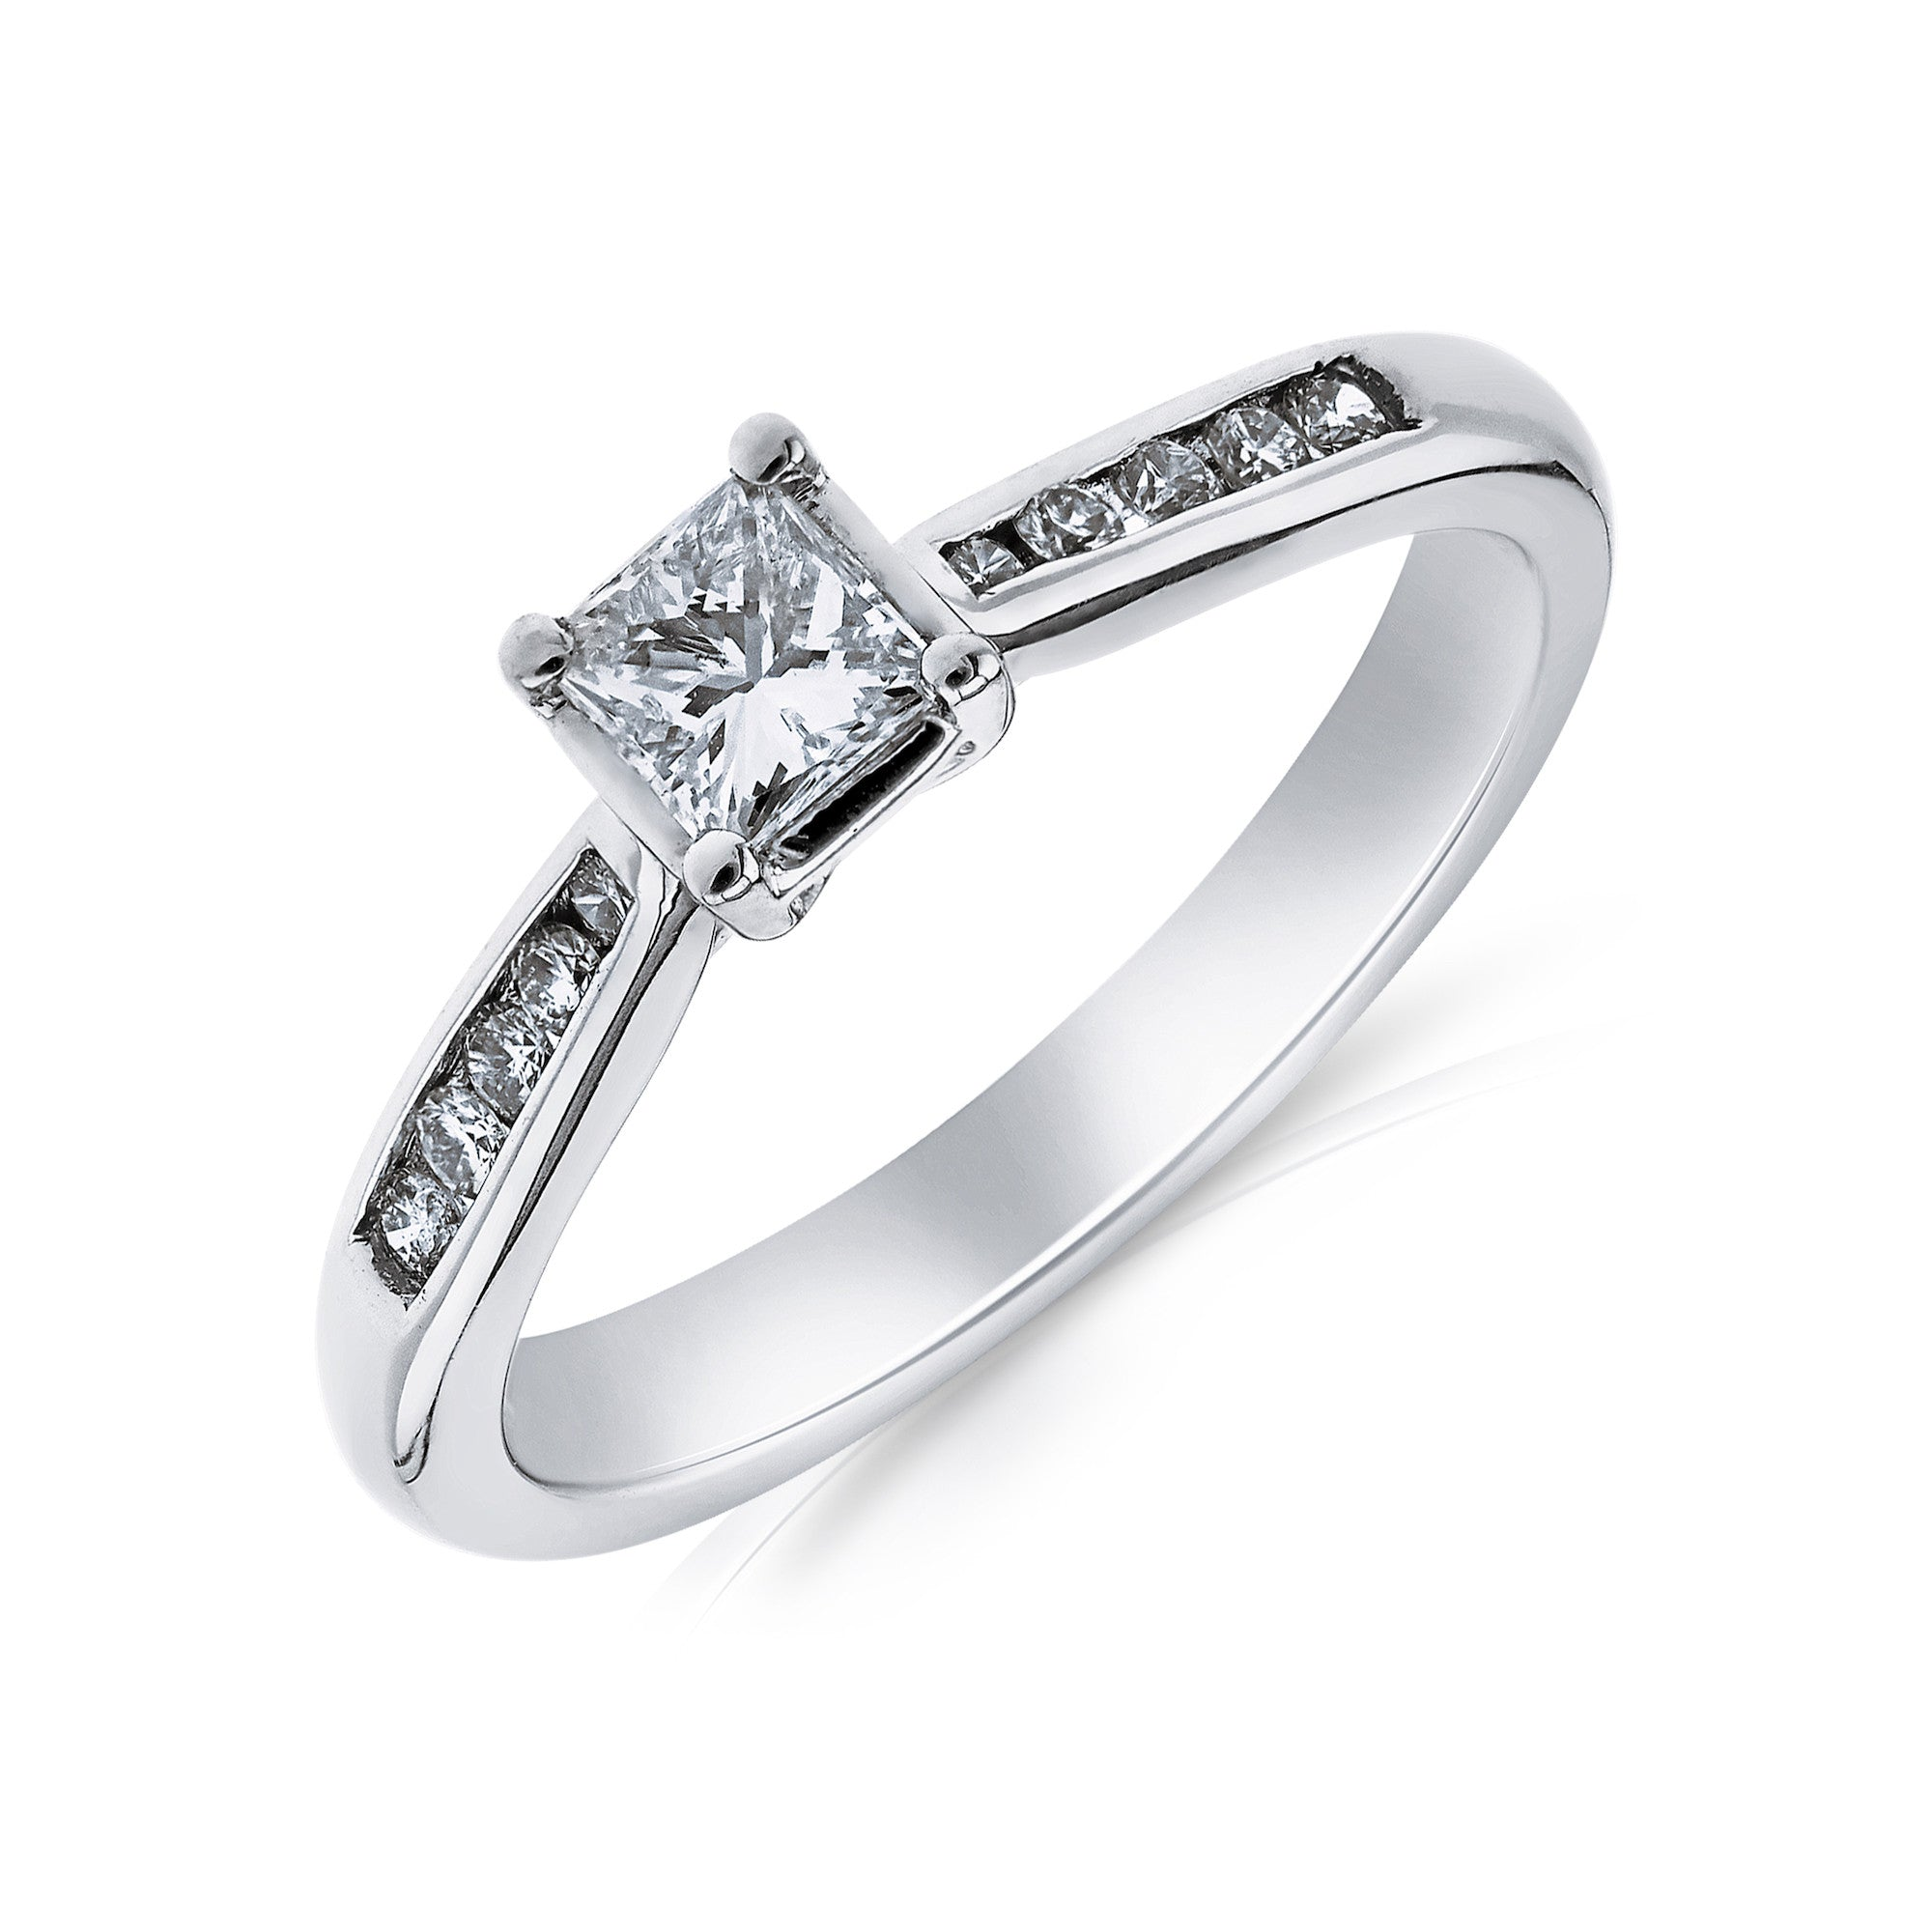 jewellery rng diamond rings sterling silver engagement cut princess ring ct